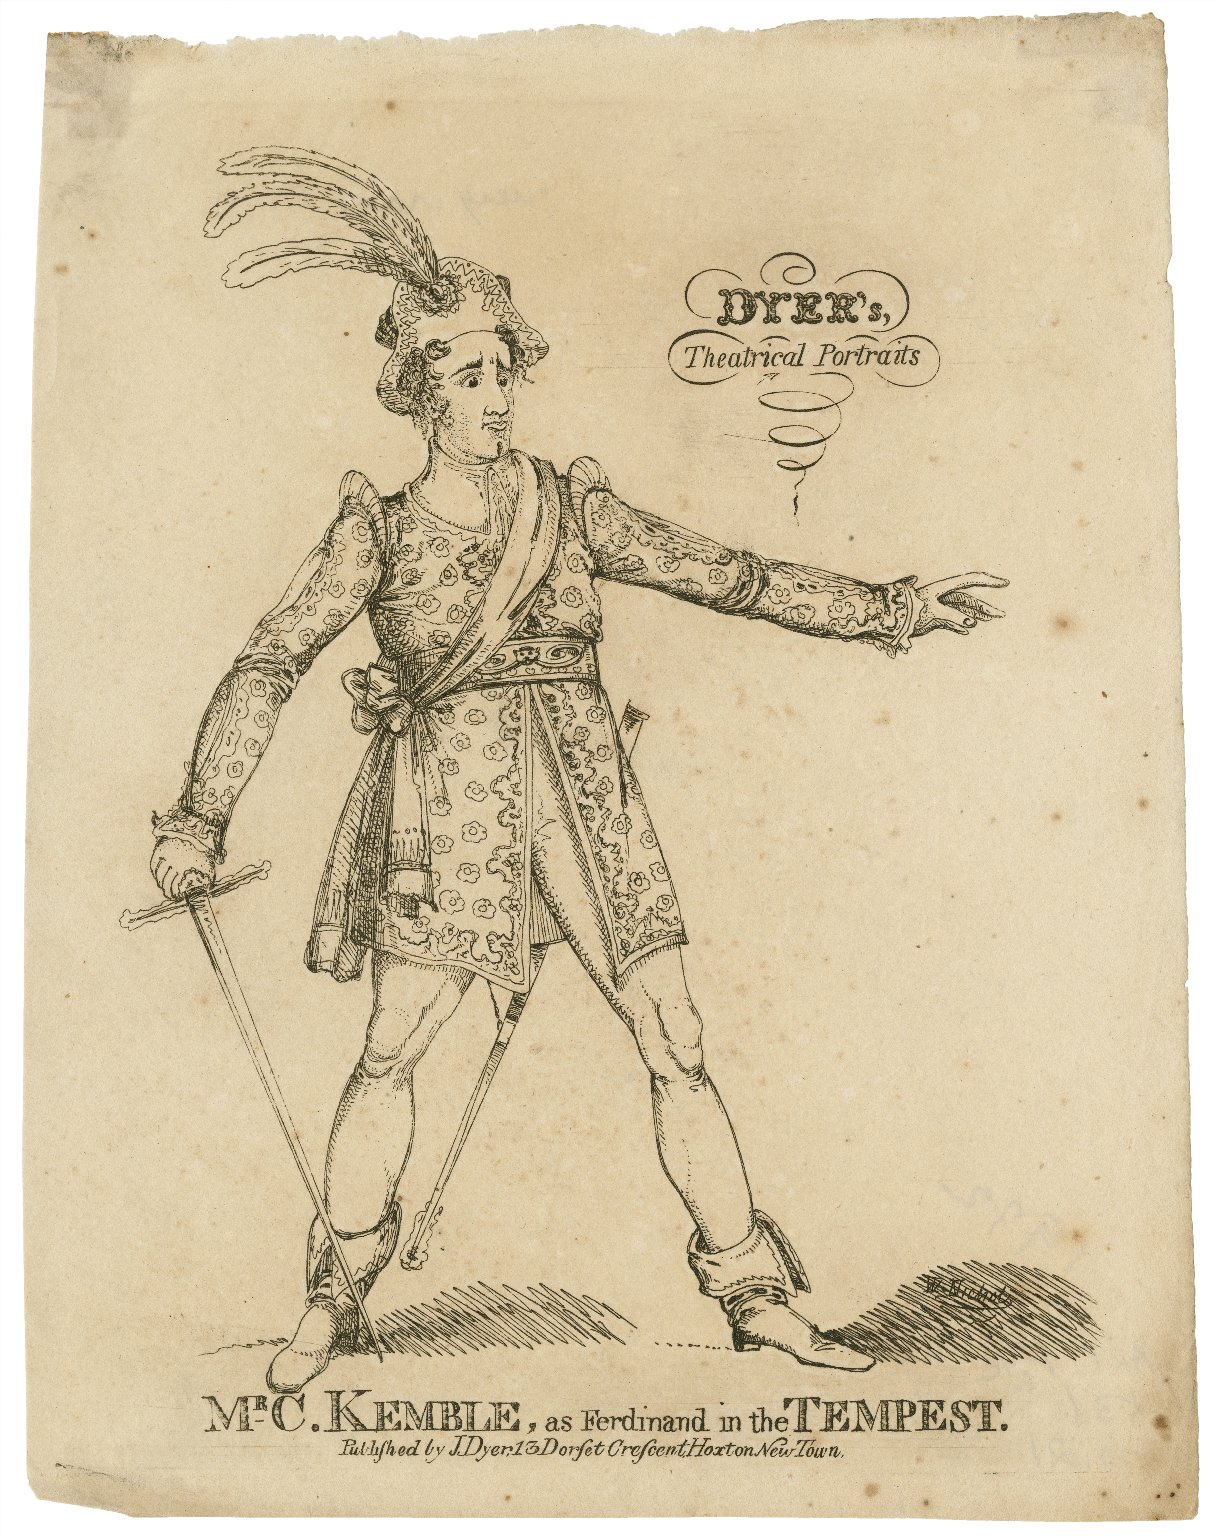 Mr. C. Kemble, as Ferdinand in the Tempest [by Shakespeare] [graphic] / W. Nichols [etch.].